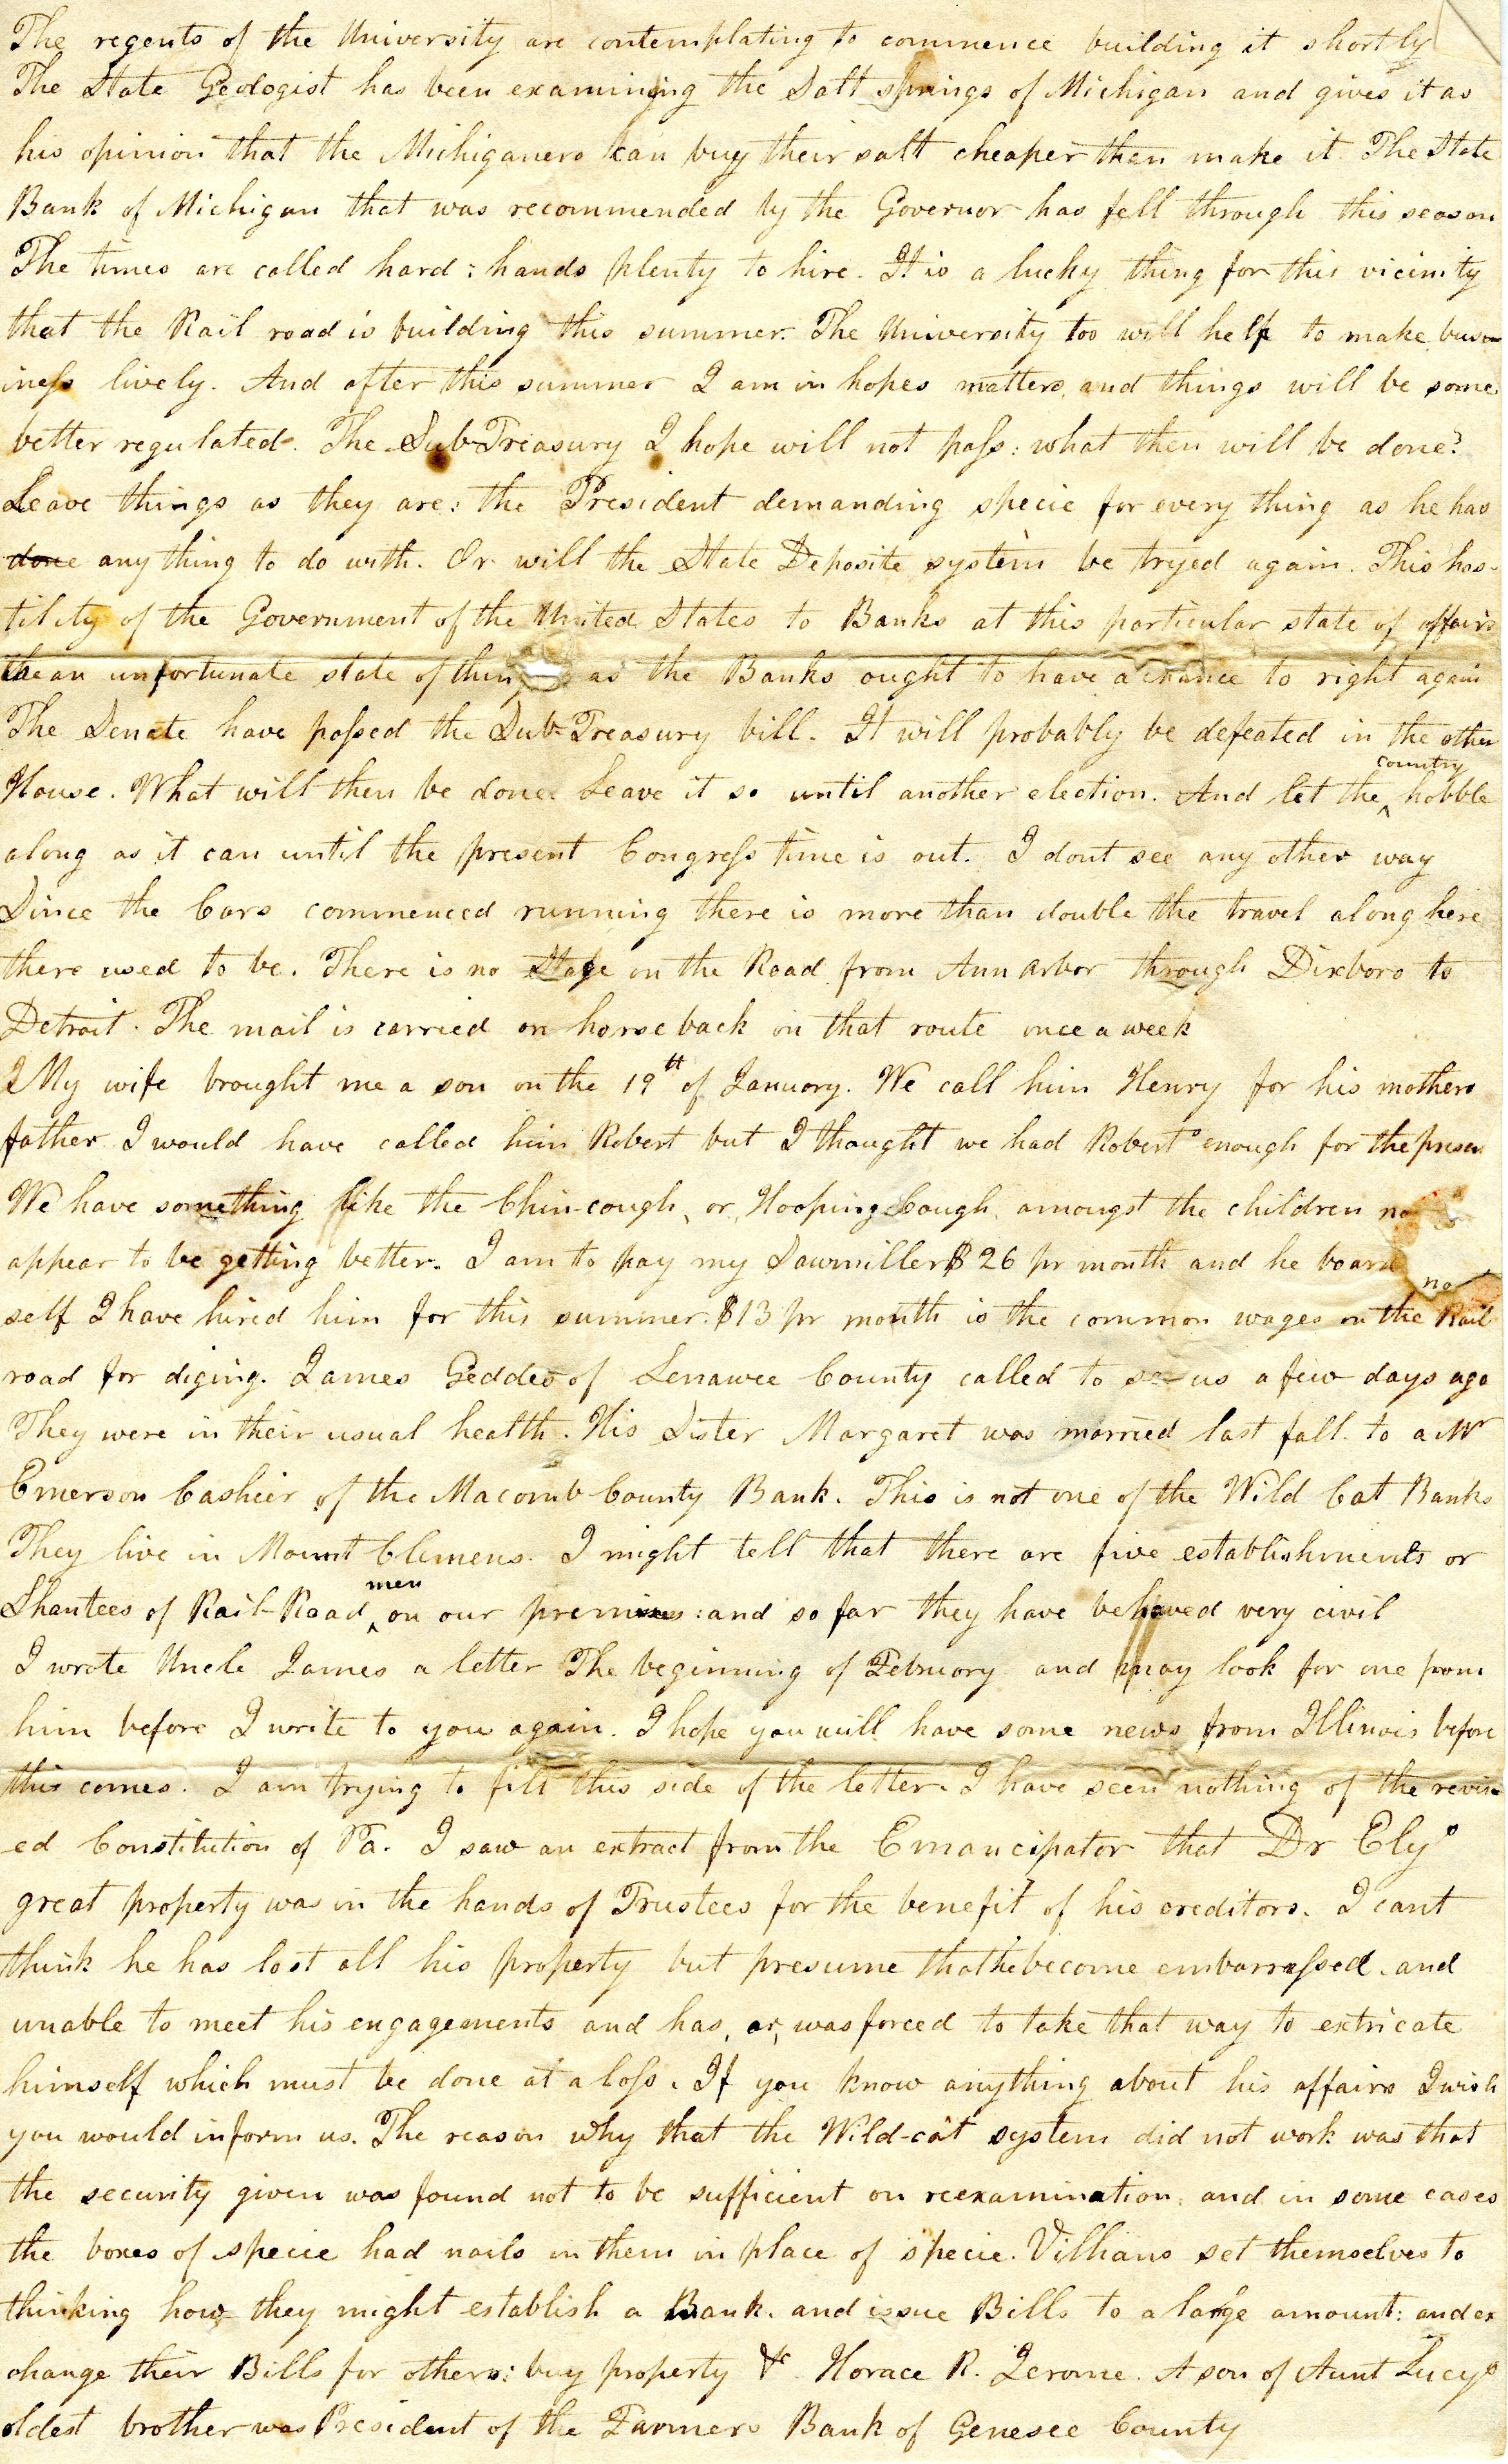 Letter From John Geddes to William Geddes, April 13, 1838 image